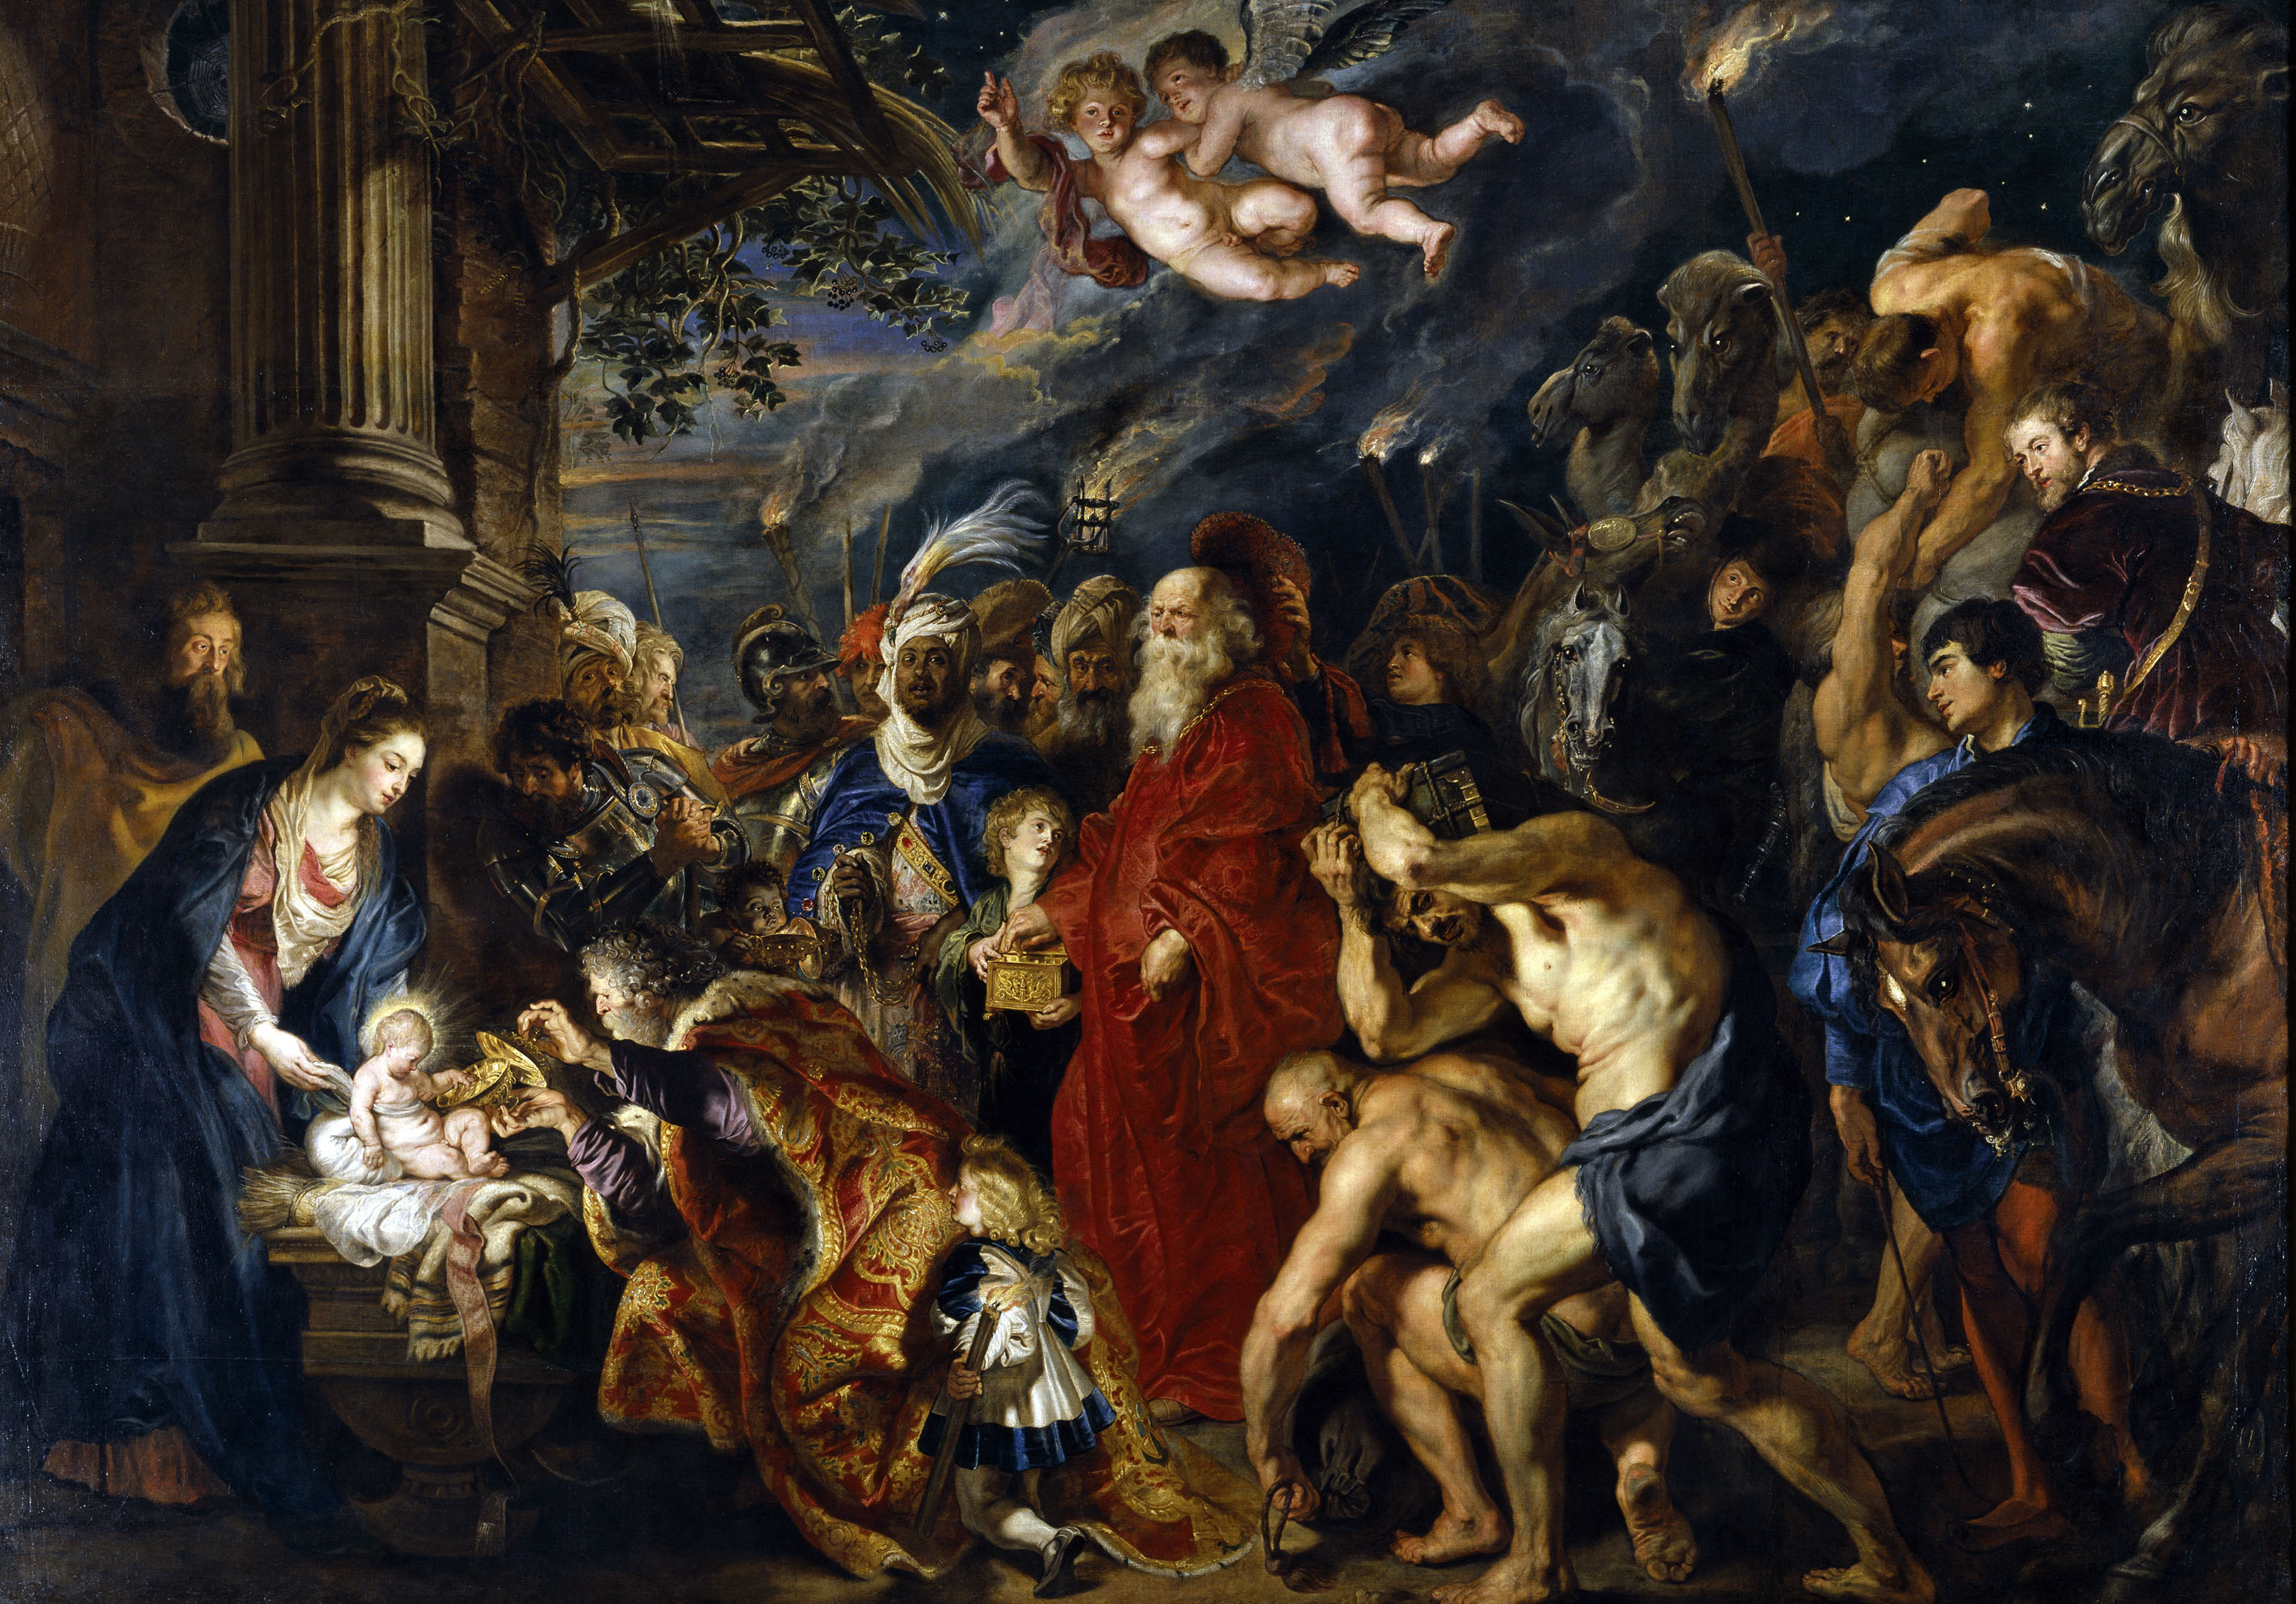 The adoration of the Magi by Peter Paul Rubens, the most famous painter from my hometown Antwerp. Painted in 1609 to decorate the negotiations hall for the Twelve Year's truce. Given to the Spanish ambassador in 1612, it came into possession of the Spanish king Philips IV. Rubens himself reworked it slightly in Spain in 1628-1629. It survived a fire in 1734 by being cut from its frame and thrown out the window, and now resides in the Prado in Madrid.